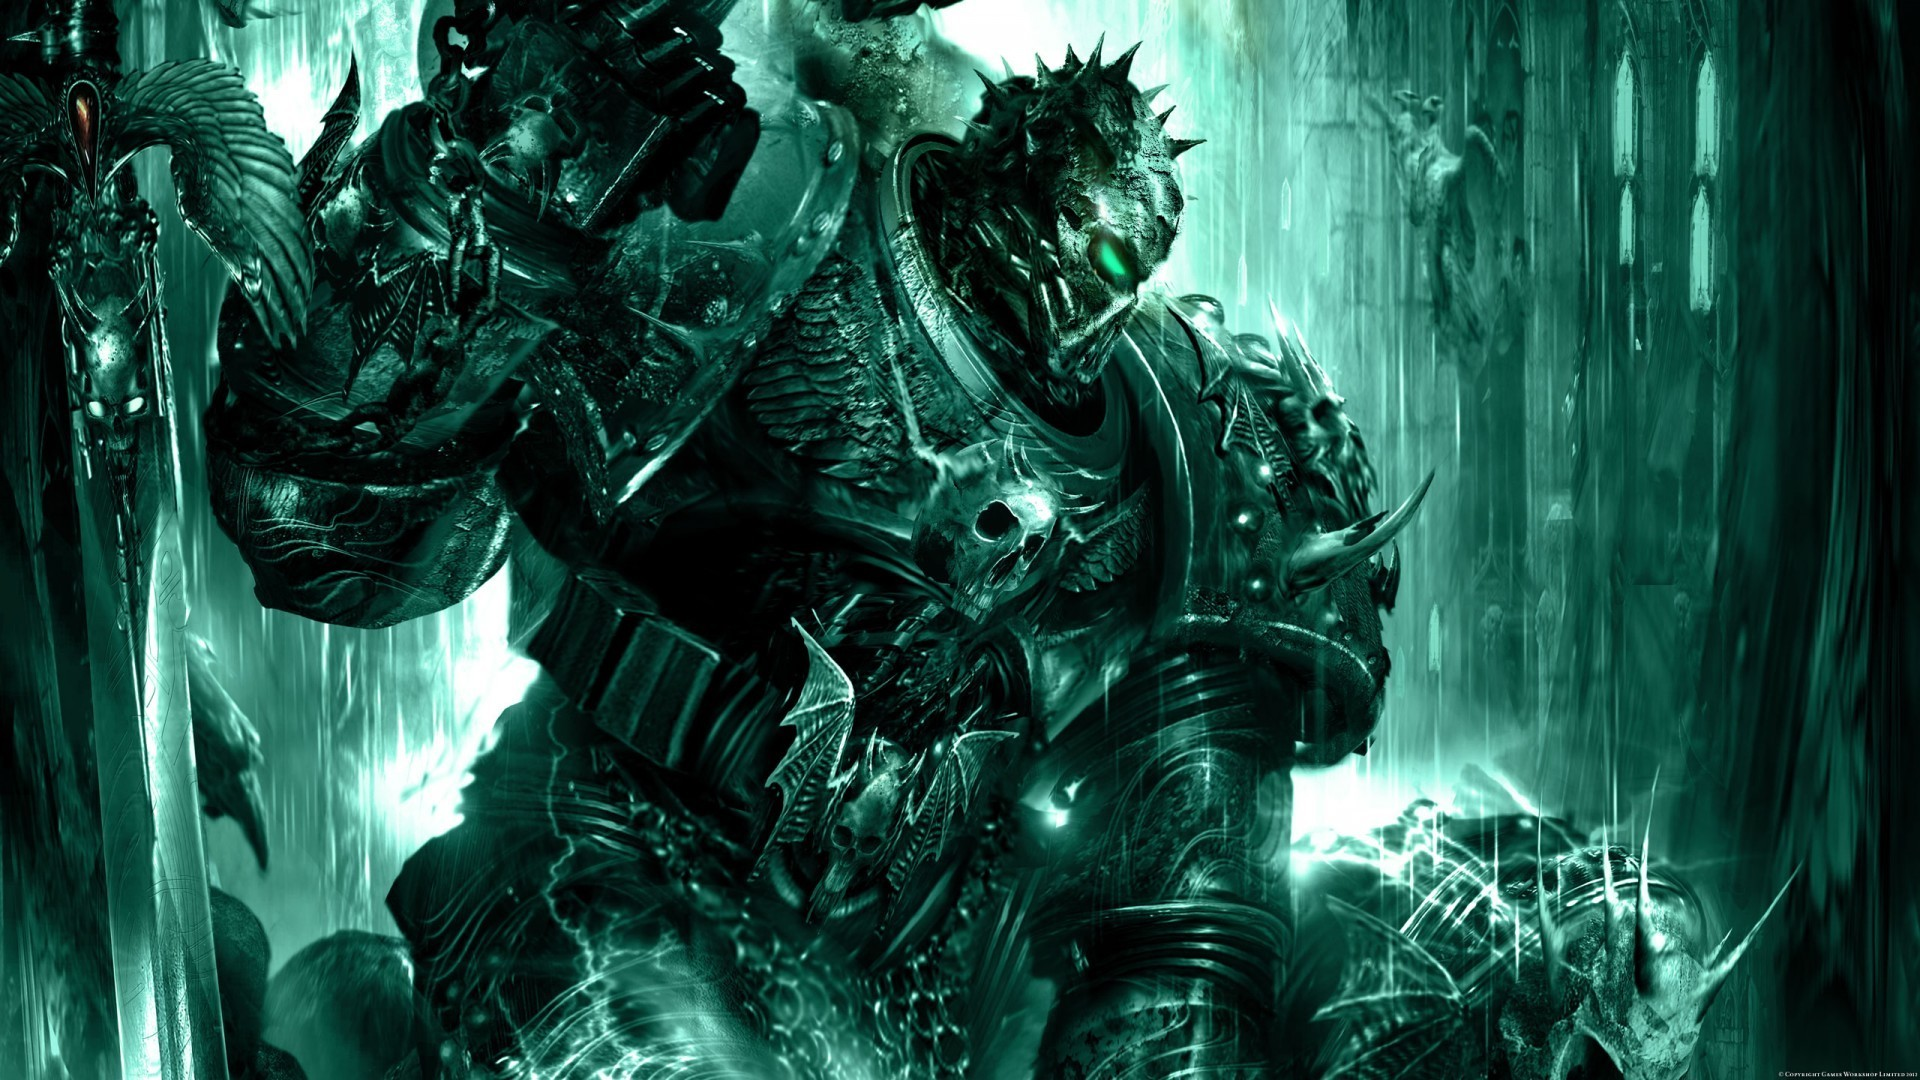 Media RSS Feed Report media chaos space marines (view original)